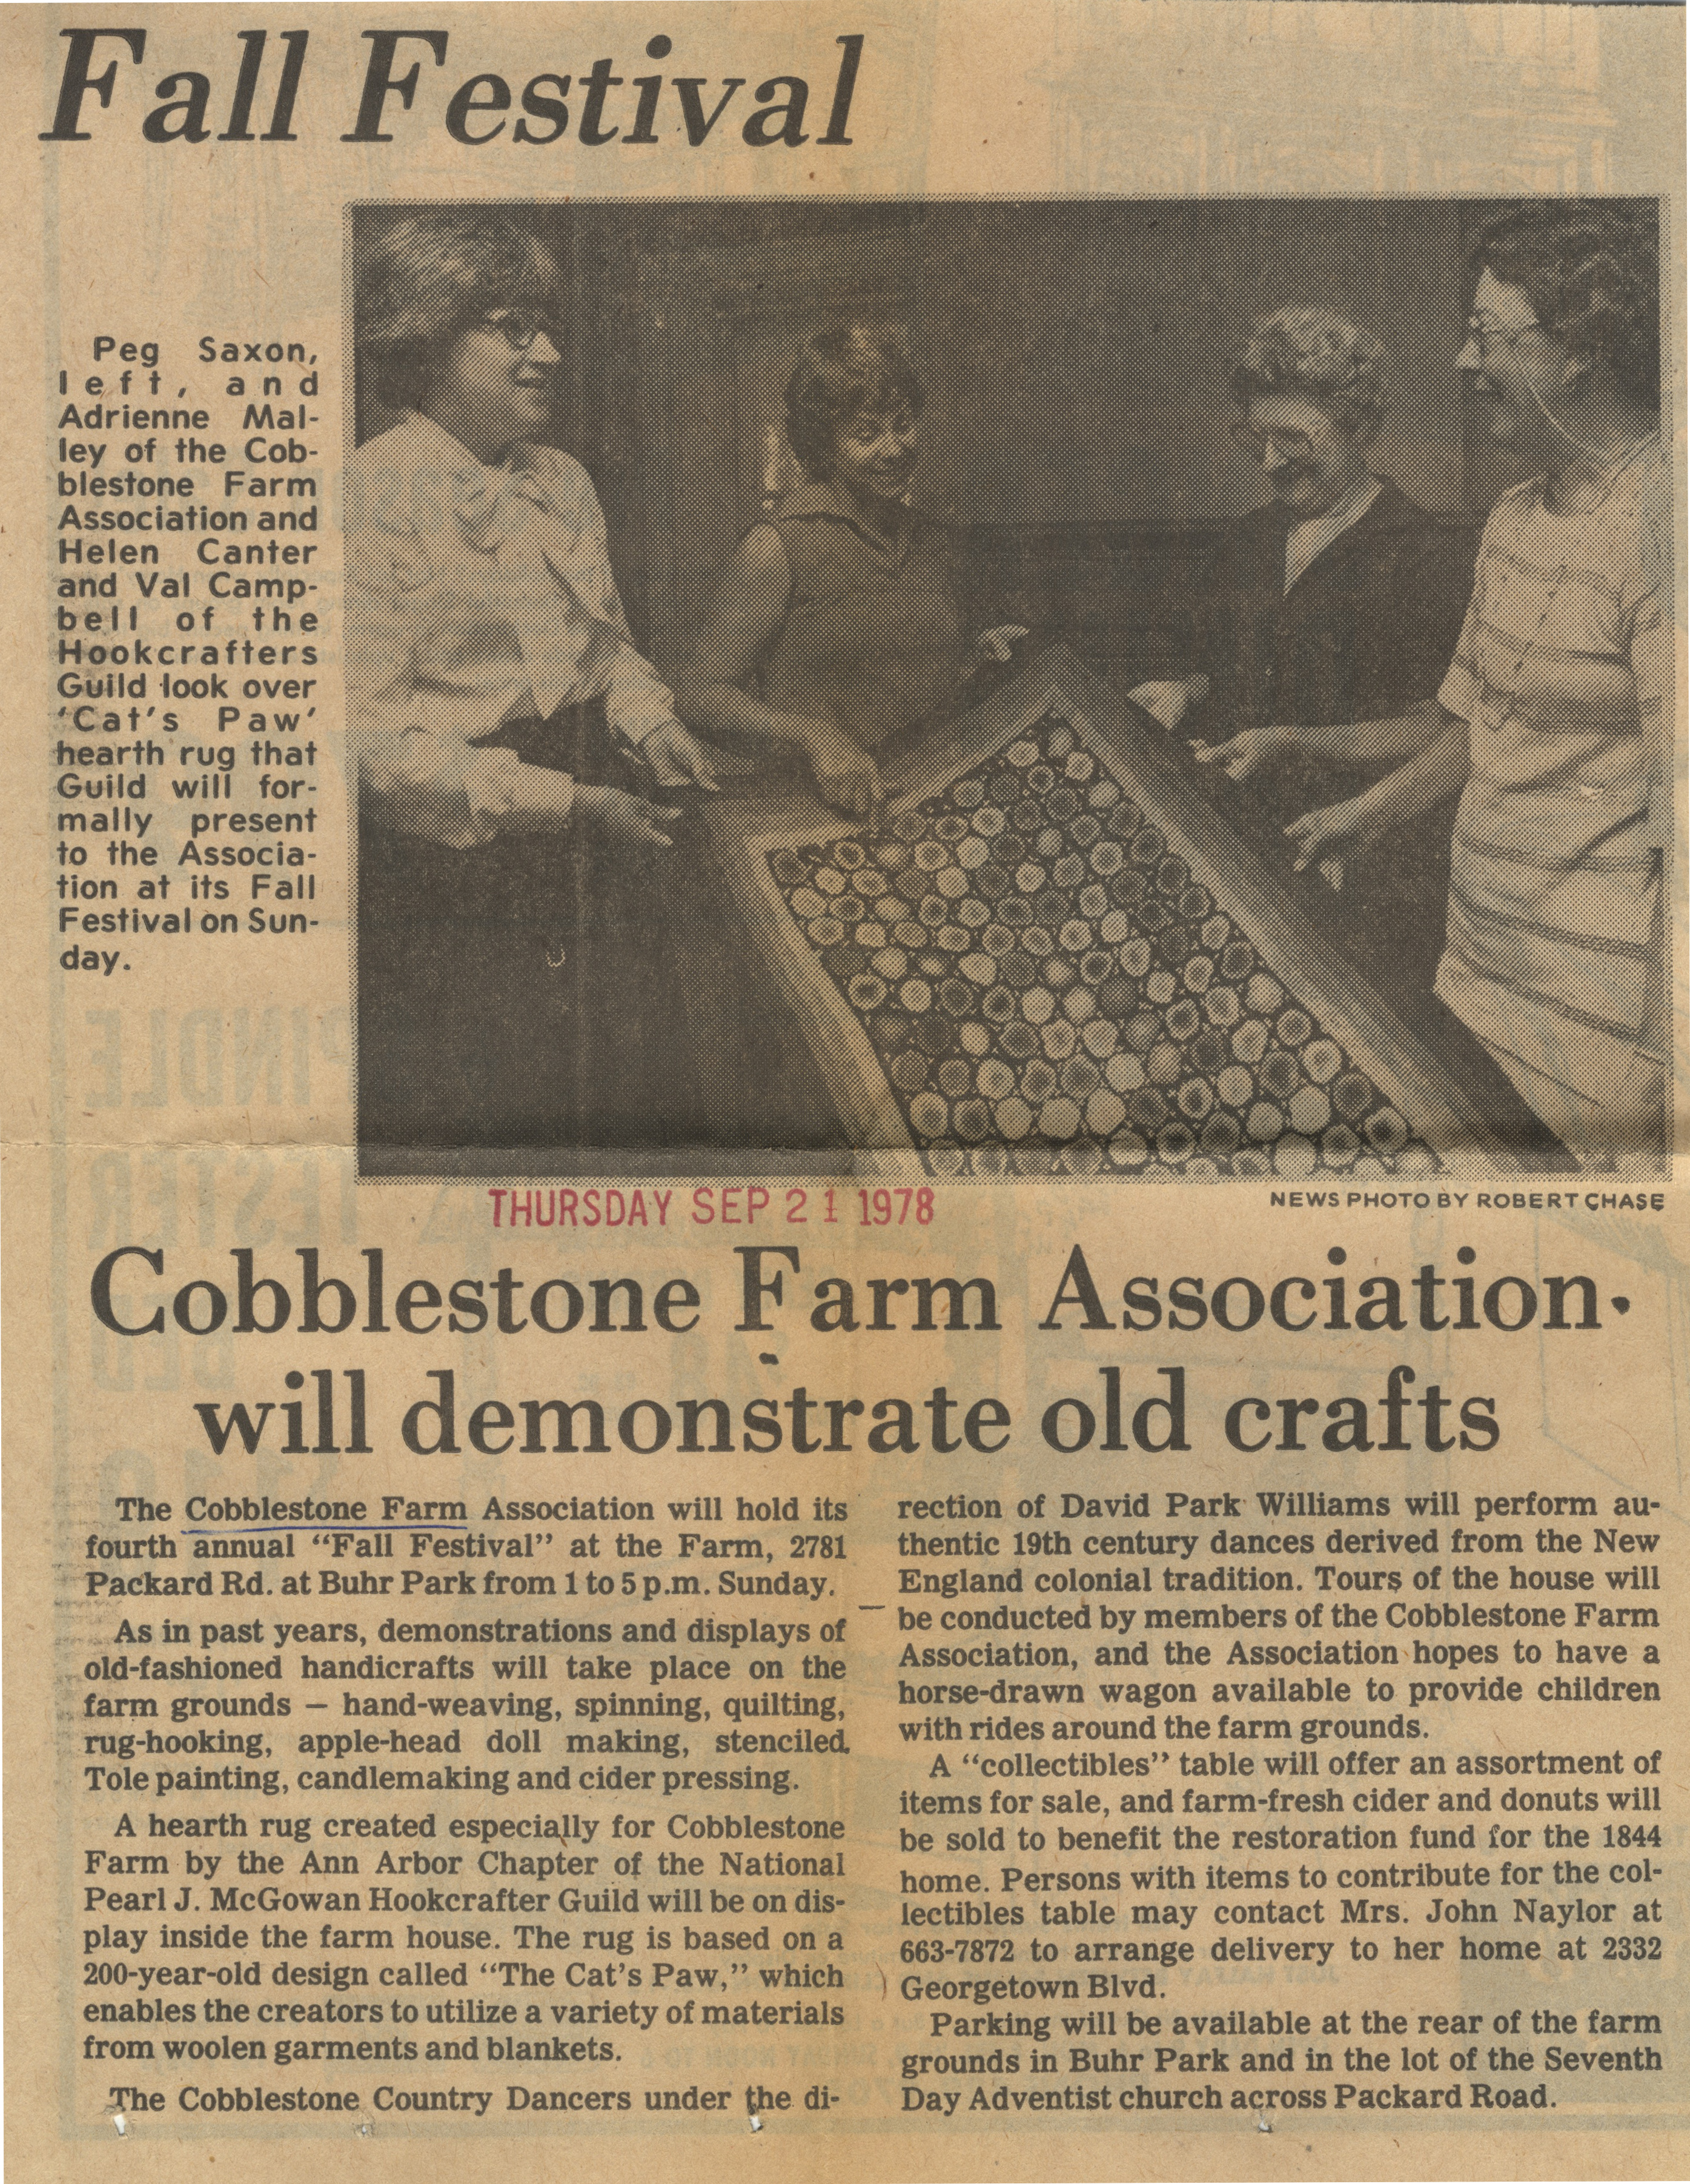 Cobblestone Farm Association Will Demonstrate Old Crafts image